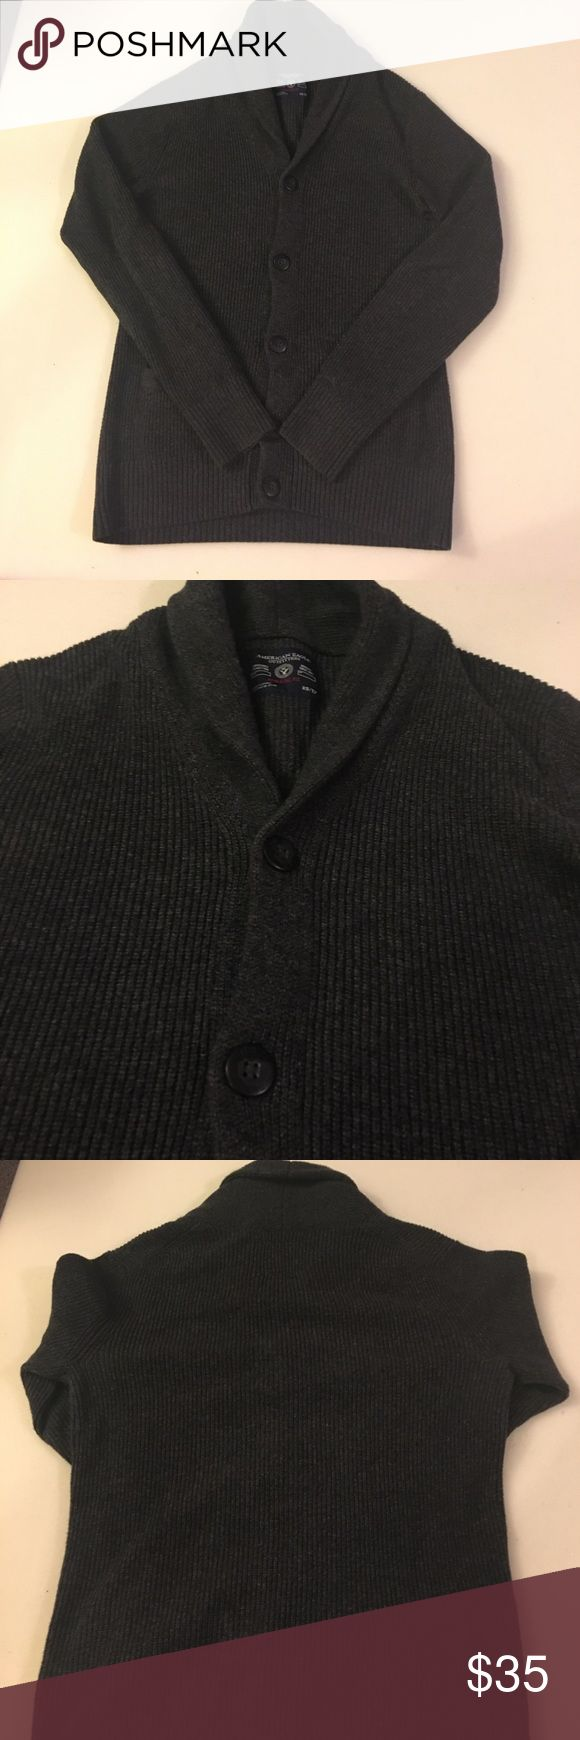 Men's Shawl Cardigan Men's Cardigan. Shawl Collar. Charcoal Grey. Athletic Fit. XS Great Condition! Make an offer!!!! American Eagle Outfitters Sweaters Cardigan